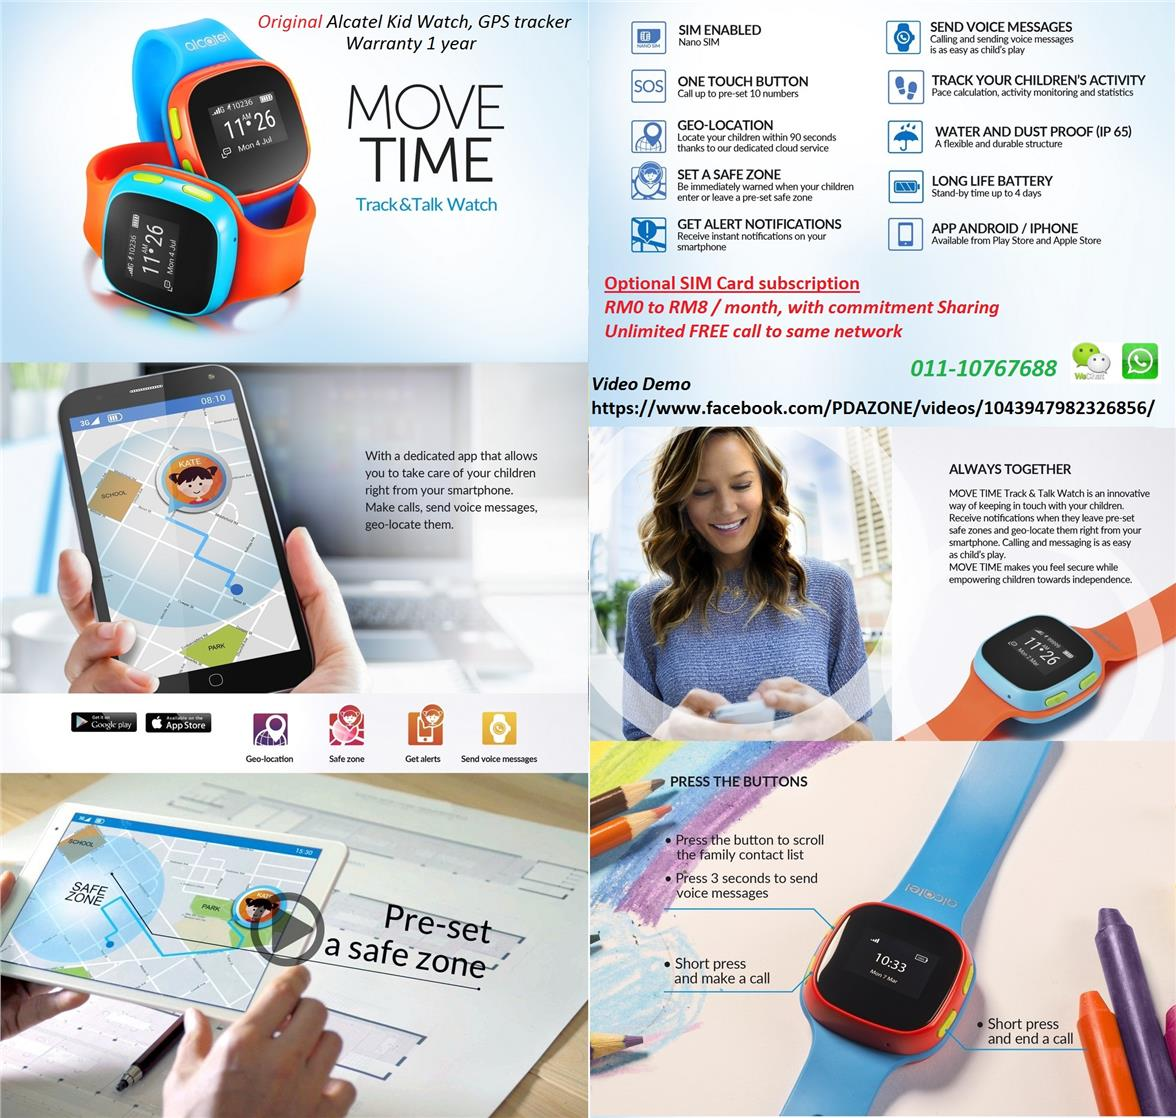 Move Time Alcatel Kids Watch (Blue) Talk, GPS Tracker, warranty 1 year